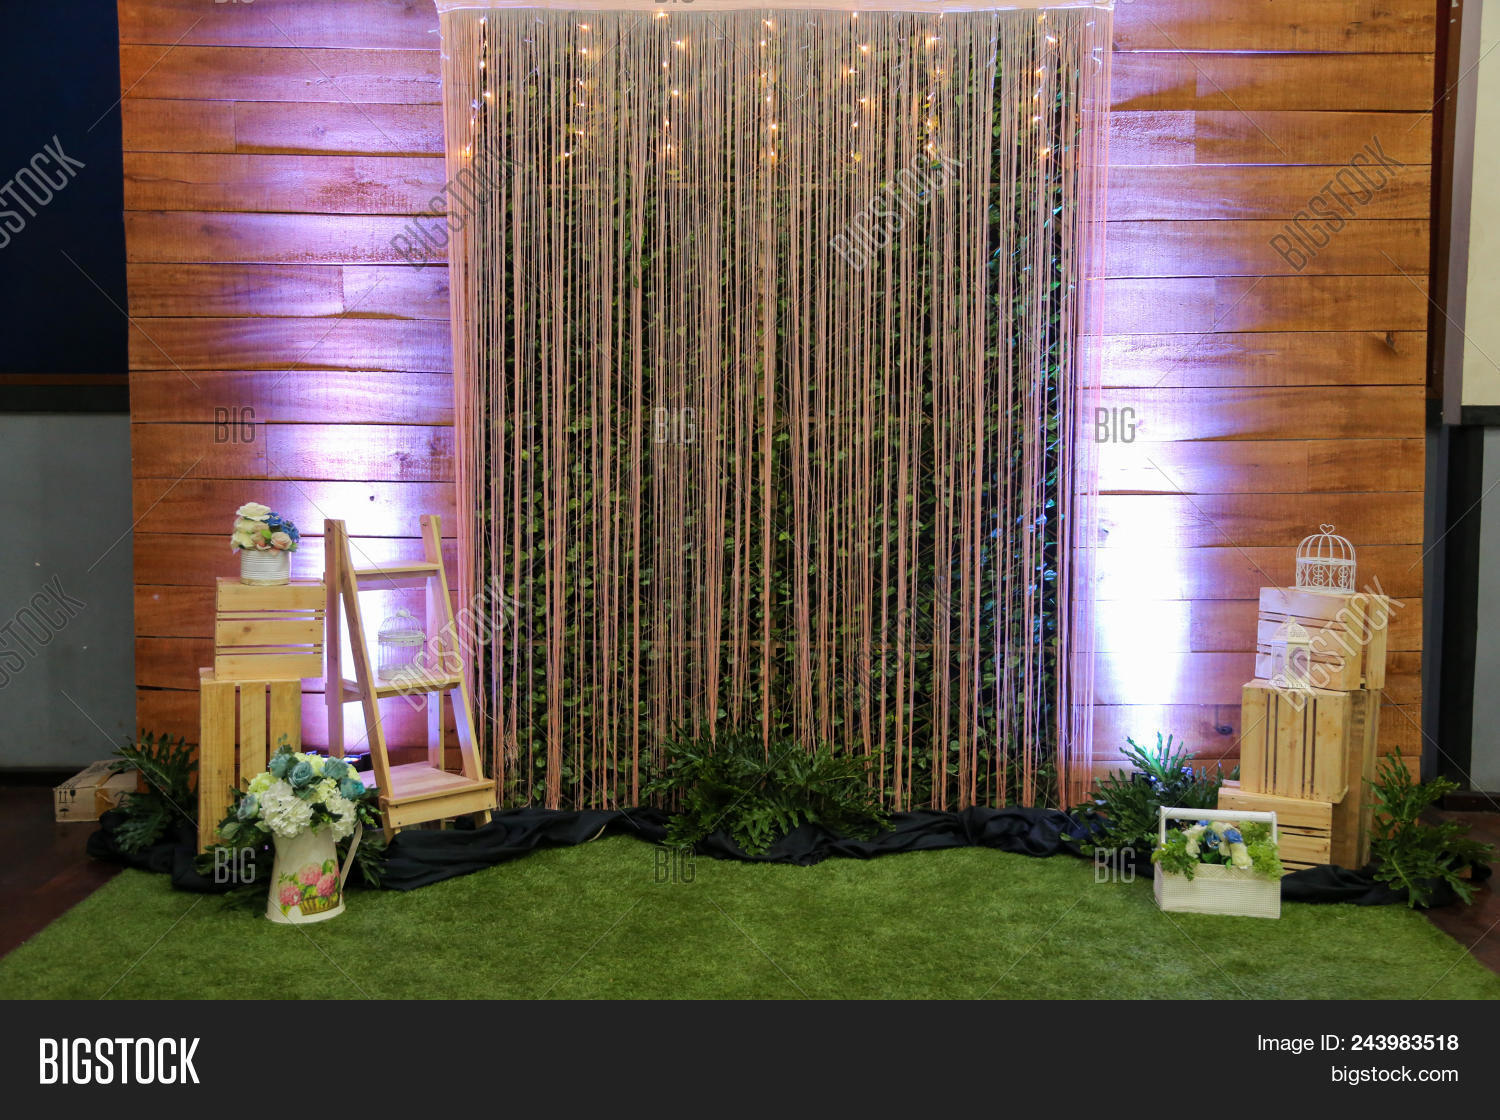 Decor Photobooth Beautiful Photo Booth Image Photo Free Trial Bigstock